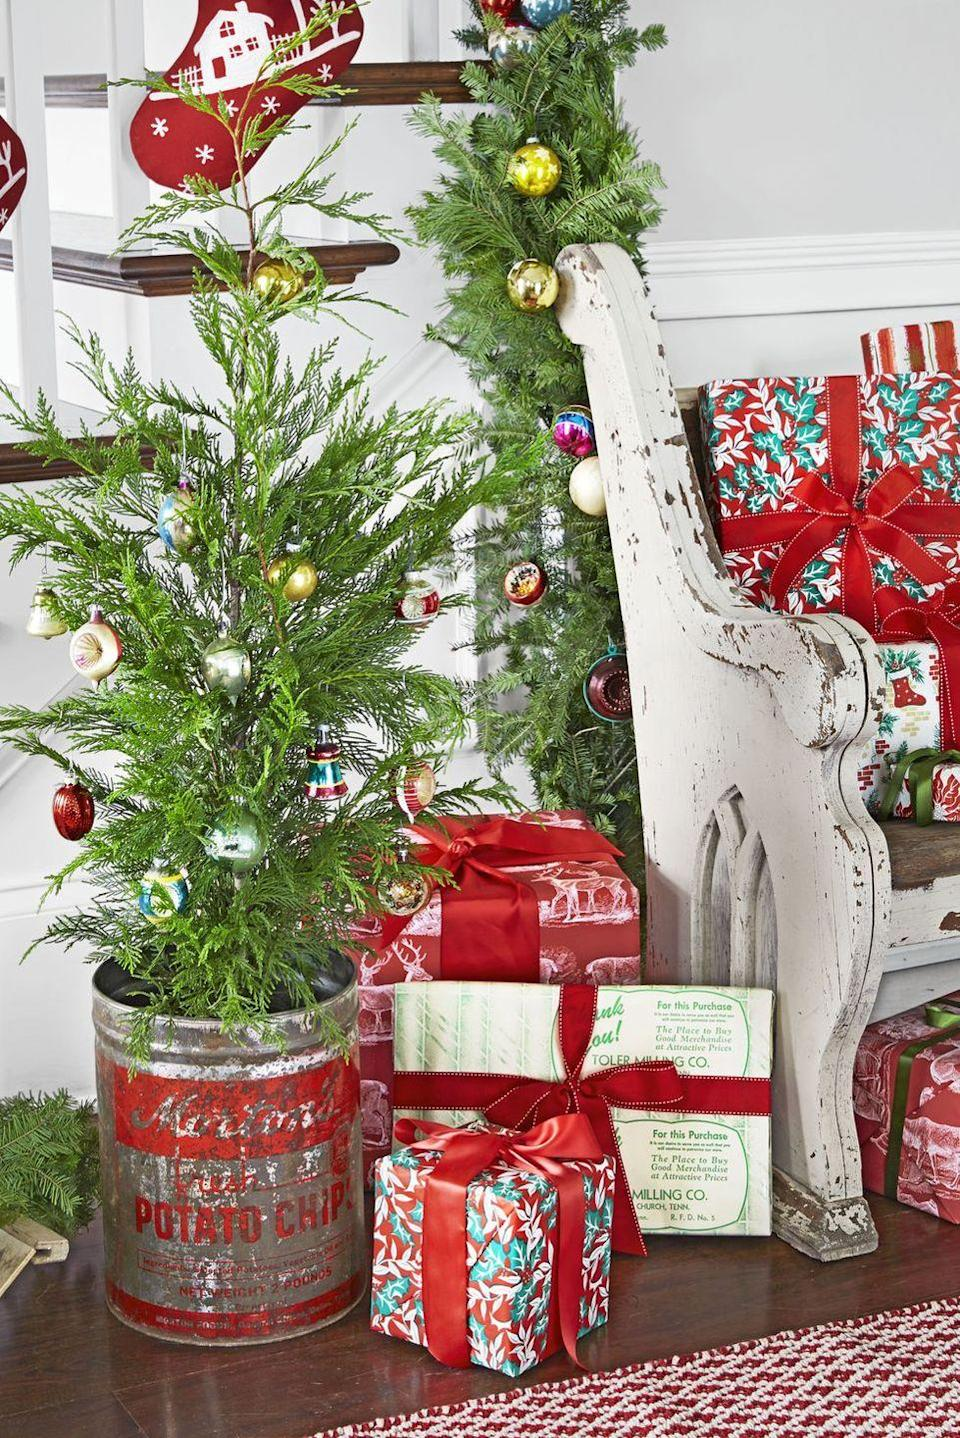 """<p>An old potato chip pail provides the perfect place for this <a href=""""https://www.countryliving.com/home-design/decorating-ideas/g316/decorate-mini-christmas-trees/"""" rel=""""nofollow noopener"""" target=""""_blank"""" data-ylk=""""slk:mini Christmas tree"""" class=""""link rapid-noclick-resp"""">mini Christmas tree</a>.</p><p><a class=""""link rapid-noclick-resp"""" href=""""https://go.redirectingat.com?id=74968X1596630&url=https%3A%2F%2Fwww.etsy.com%2Fmarket%2Fpotato_chip_bucket&sref=https%3A%2F%2Fwww.countryliving.com%2Fhome-design%2Fdecorating-ideas%2Fadvice%2Fg1247%2Fholiday-decorating-1208%2F"""" rel=""""nofollow noopener"""" target=""""_blank"""" data-ylk=""""slk:SHOP POTATO CHIP BUCKETS"""">SHOP POTATO CHIP BUCKETS</a></p>"""